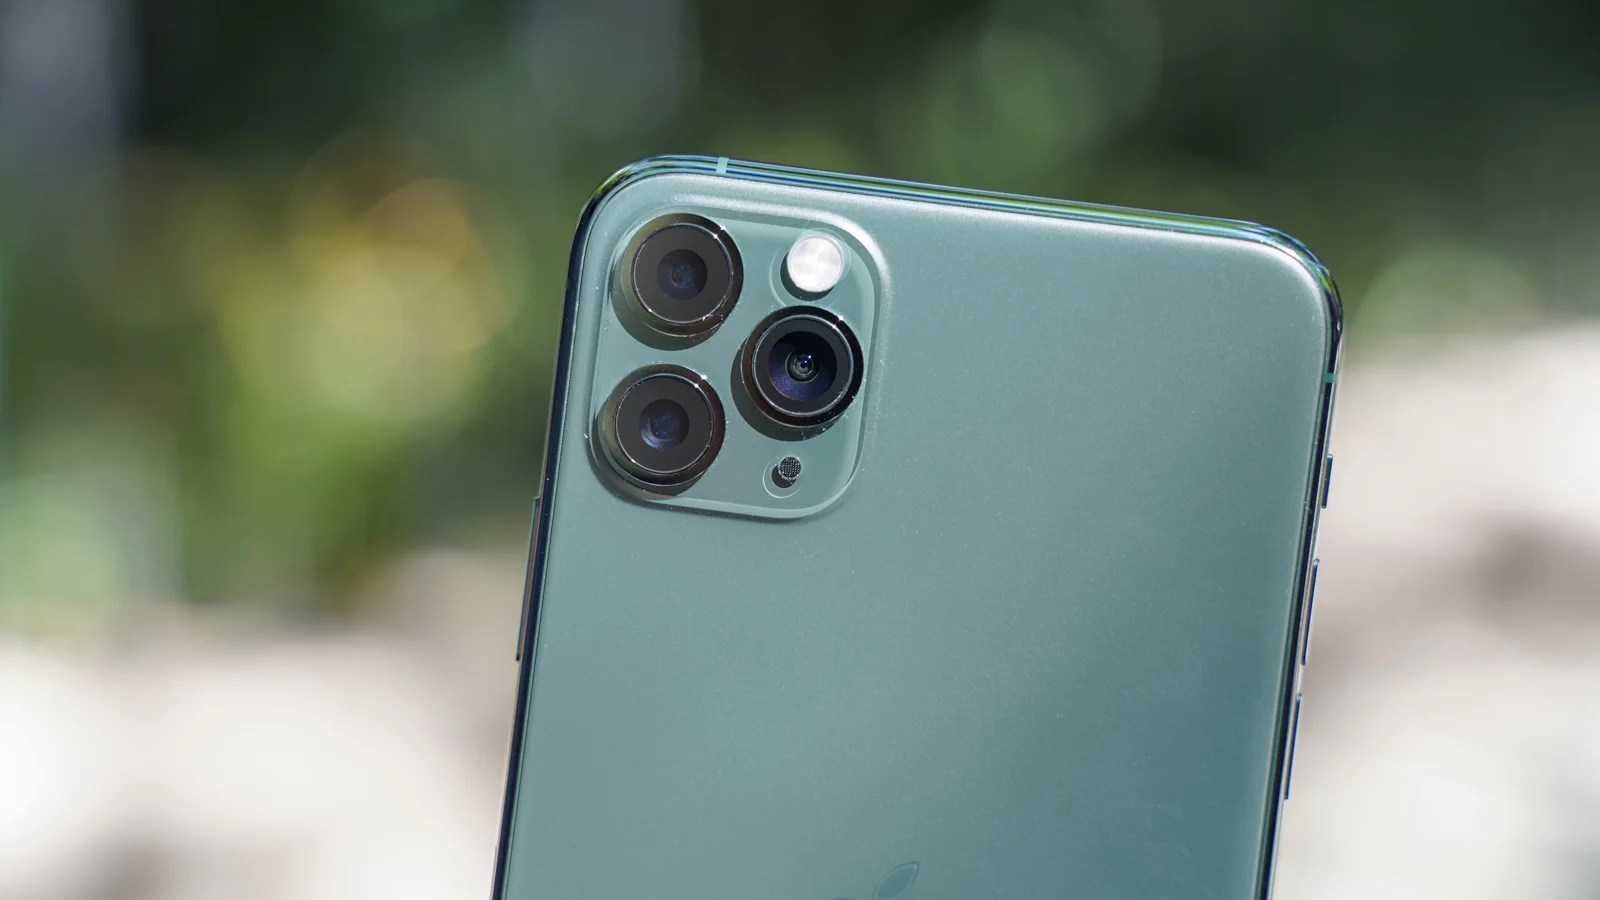 Apple S Camera Killer A Review Of The Iphone 11 Pro Max